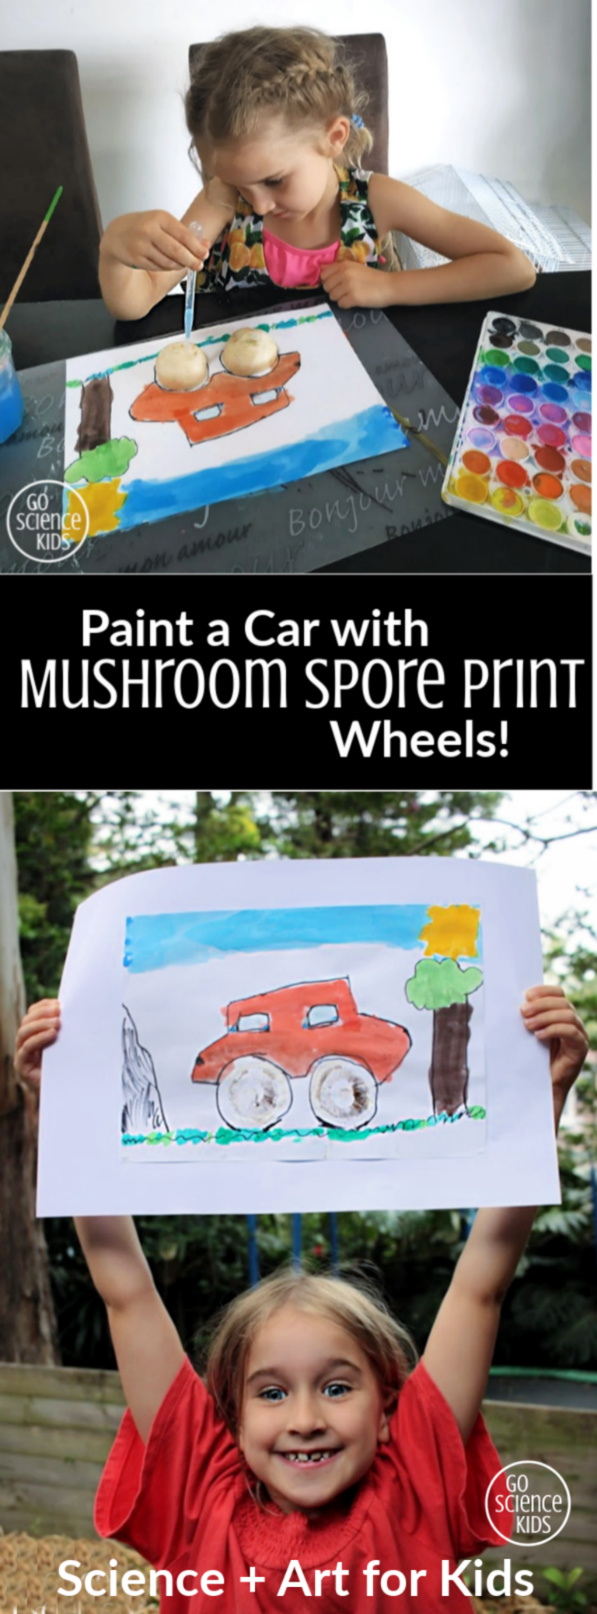 Paint a car with mushroom spore print wheels - fun art + science activity for kids